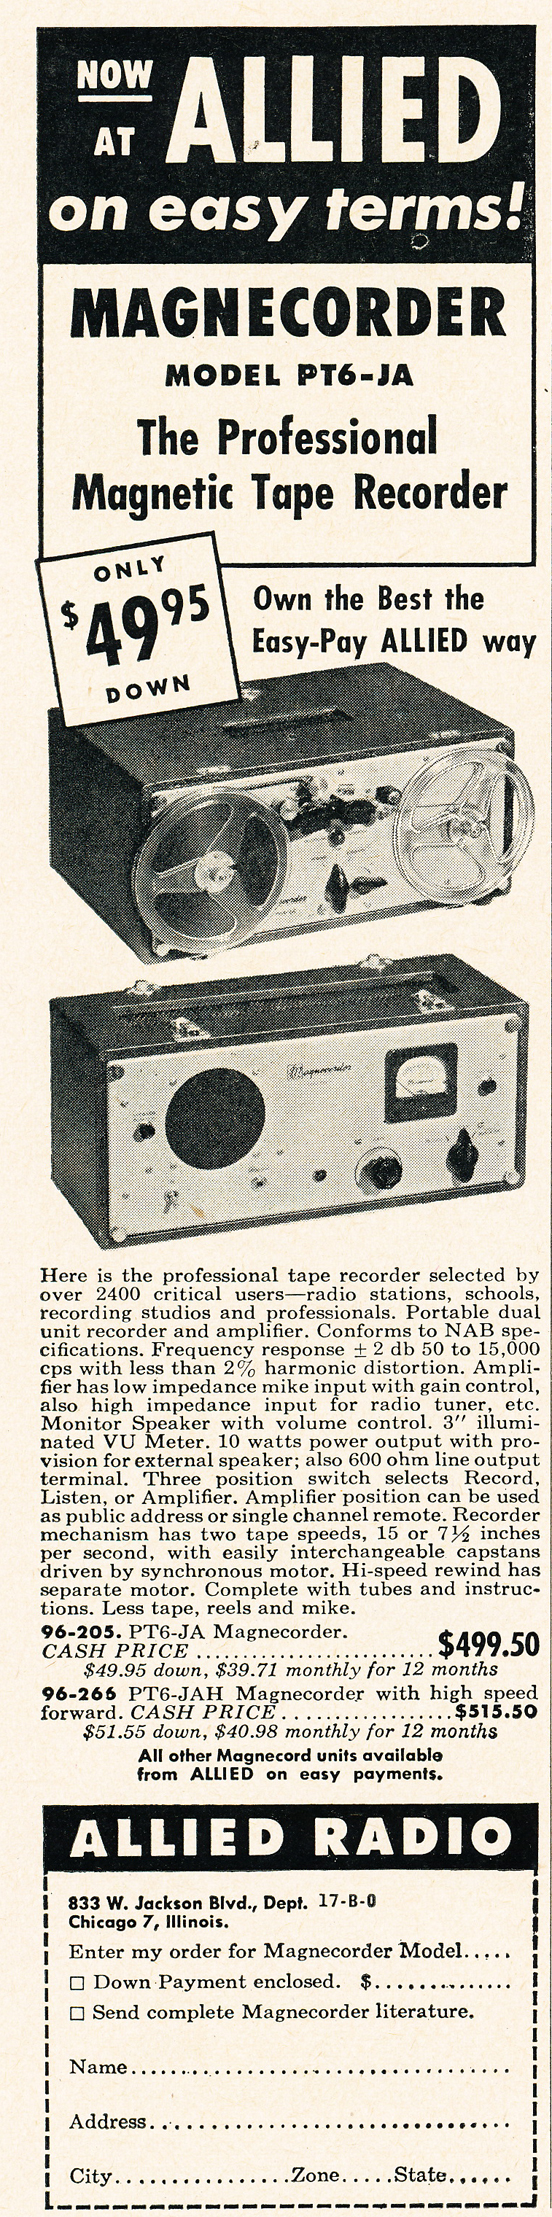 1950 Allied Radio ad featuring magnecord reel to reel  tape recorders in Reel2ReelTexas.com's vintage recording collection